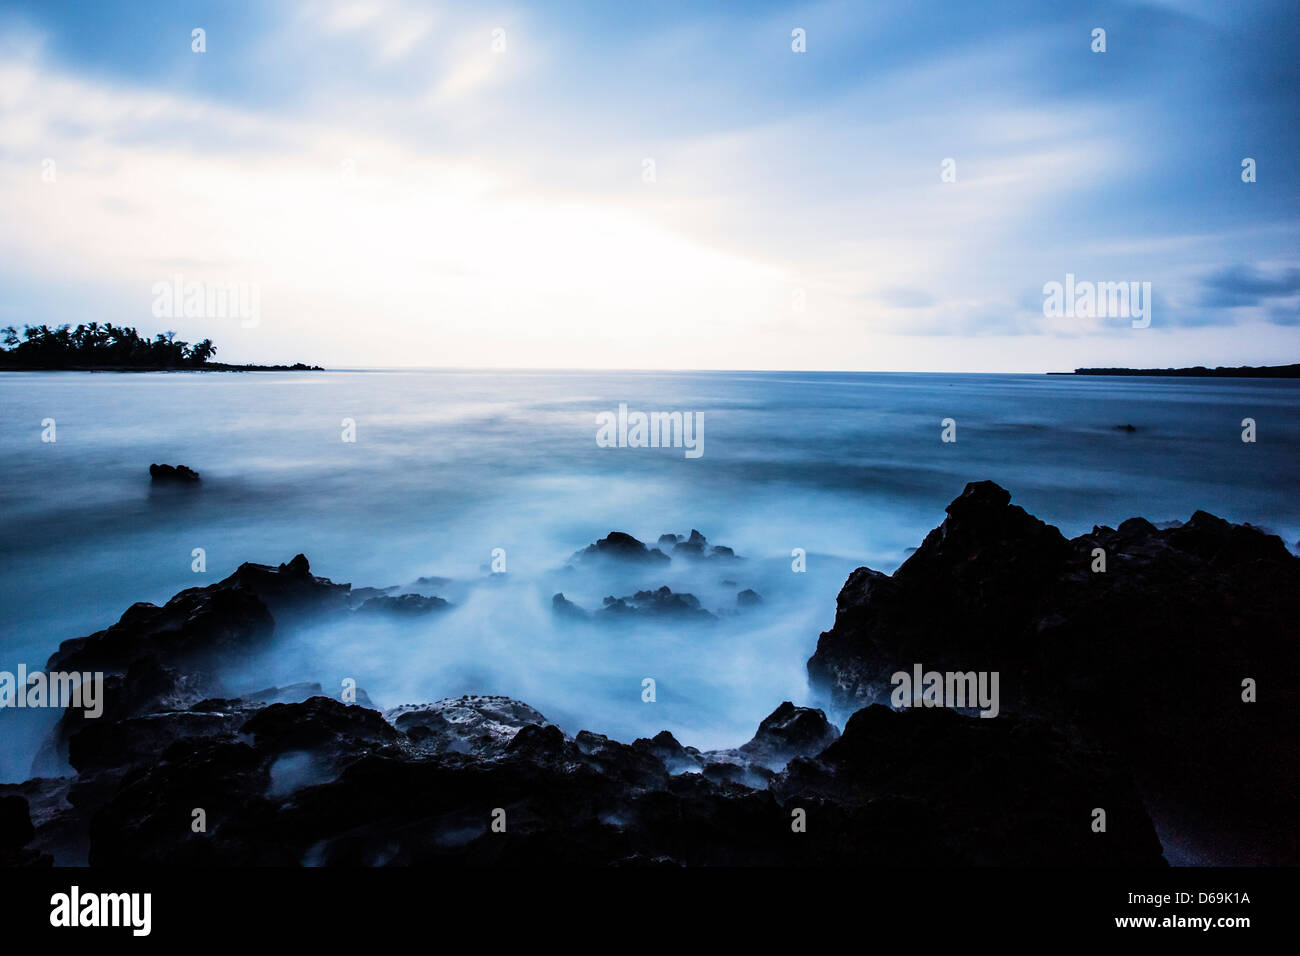 Fog rolling on rocky beach - Stock Image